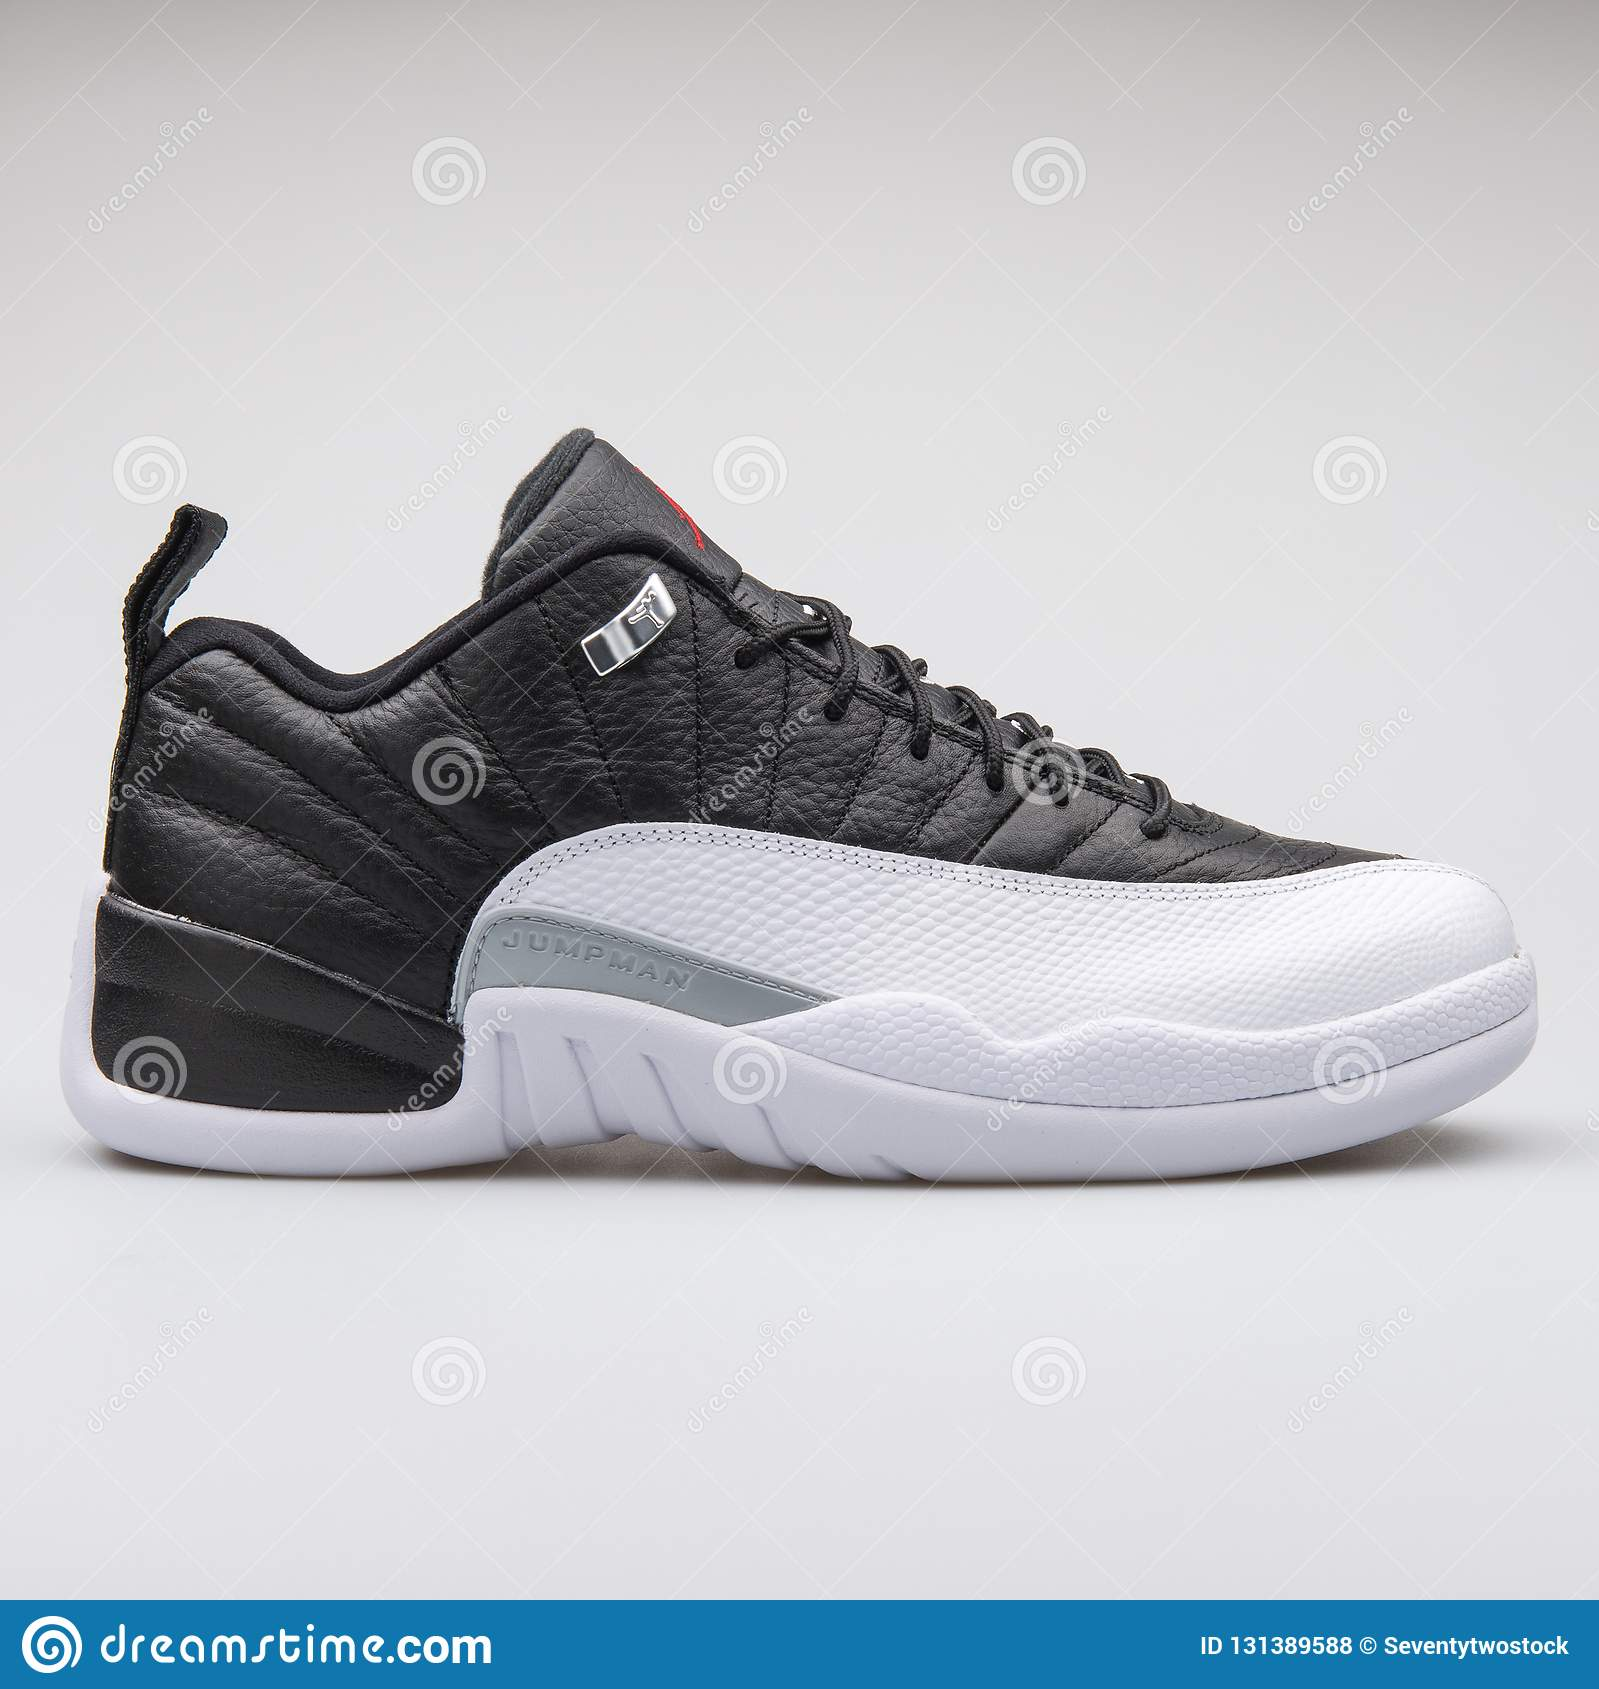 b1dca103 Nike Air Jordan 12 Low Retro black and white sneaker isolated on grey  background